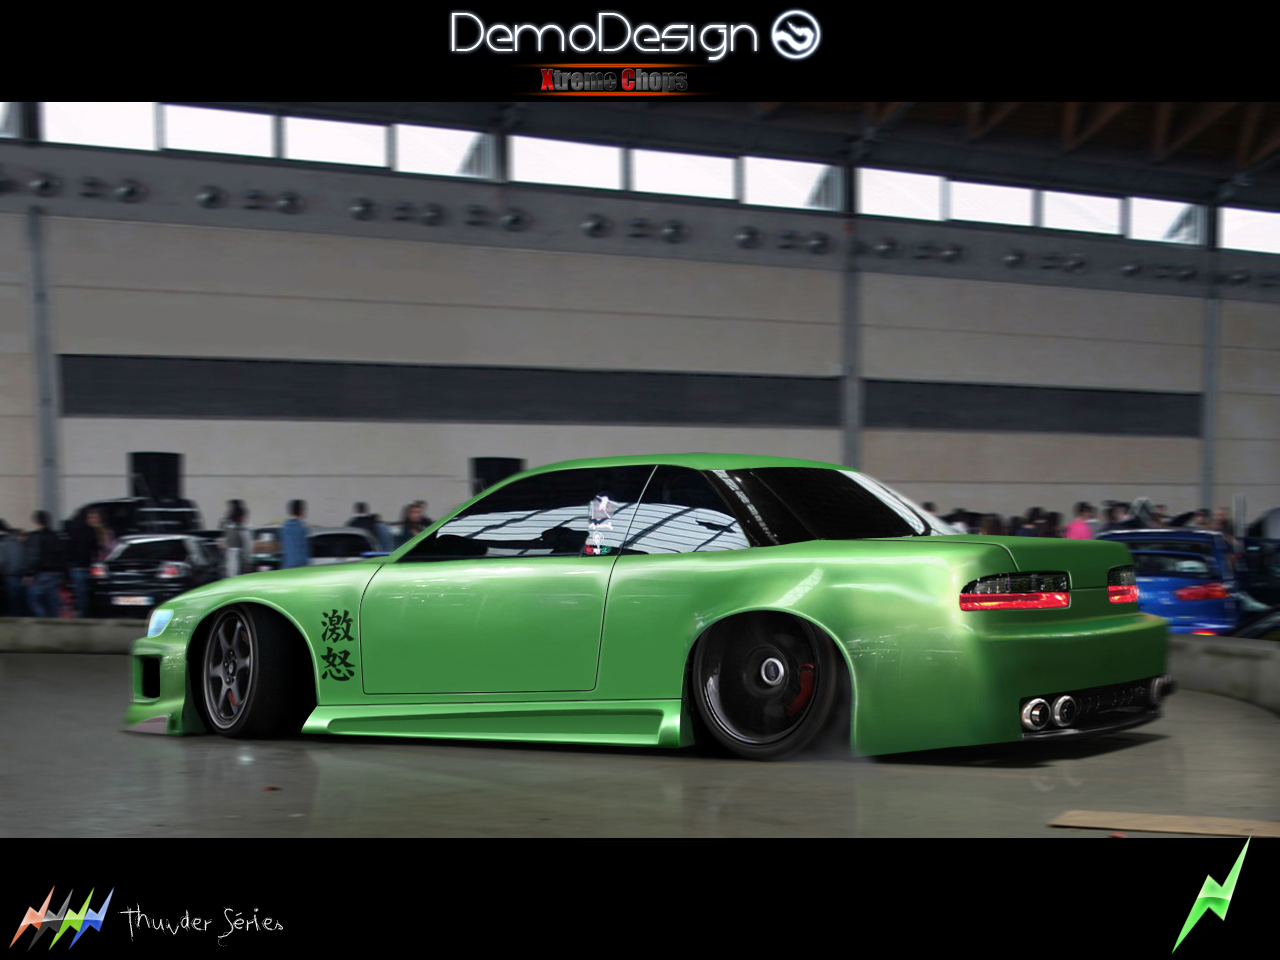 nissan silvia s13 drift show by demodesign